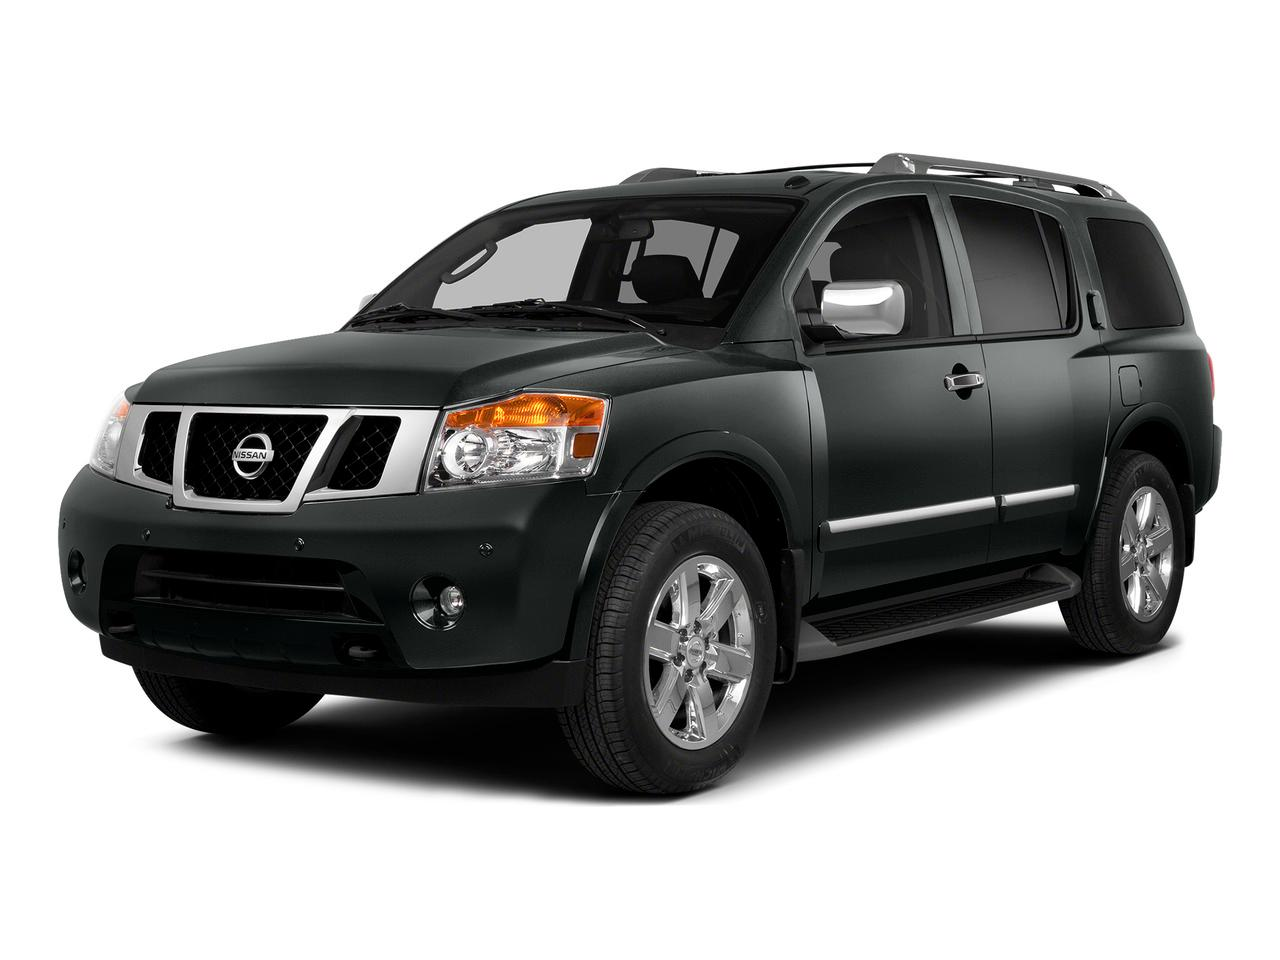 2015 Nissan Armada Vehicle Photo in Broussard, LA 70518